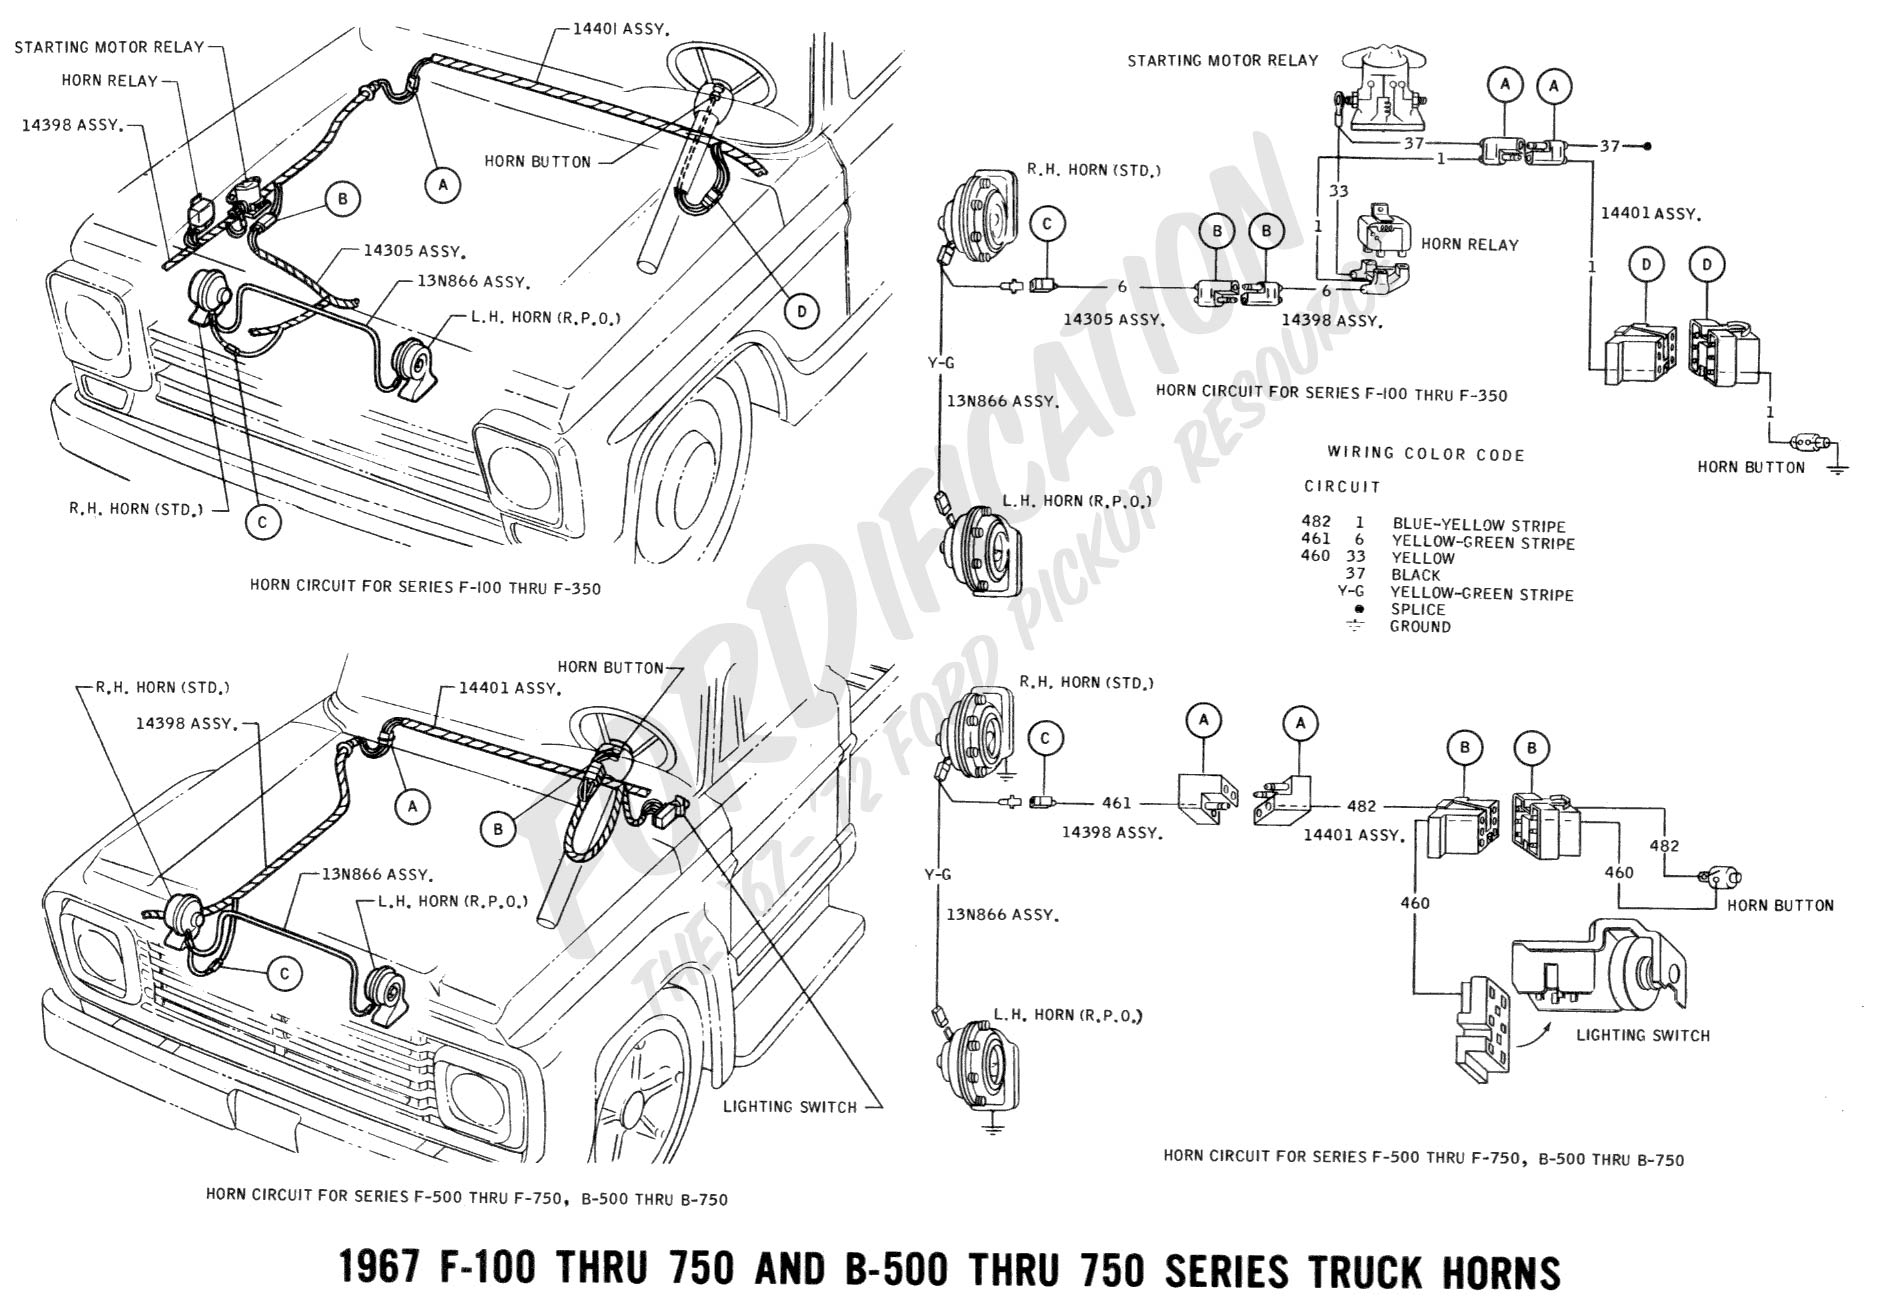 1972 ford f 250 wiper switch wiring diagram    ford    truck technical drawings and schematics section h     ford    truck technical drawings and schematics section h